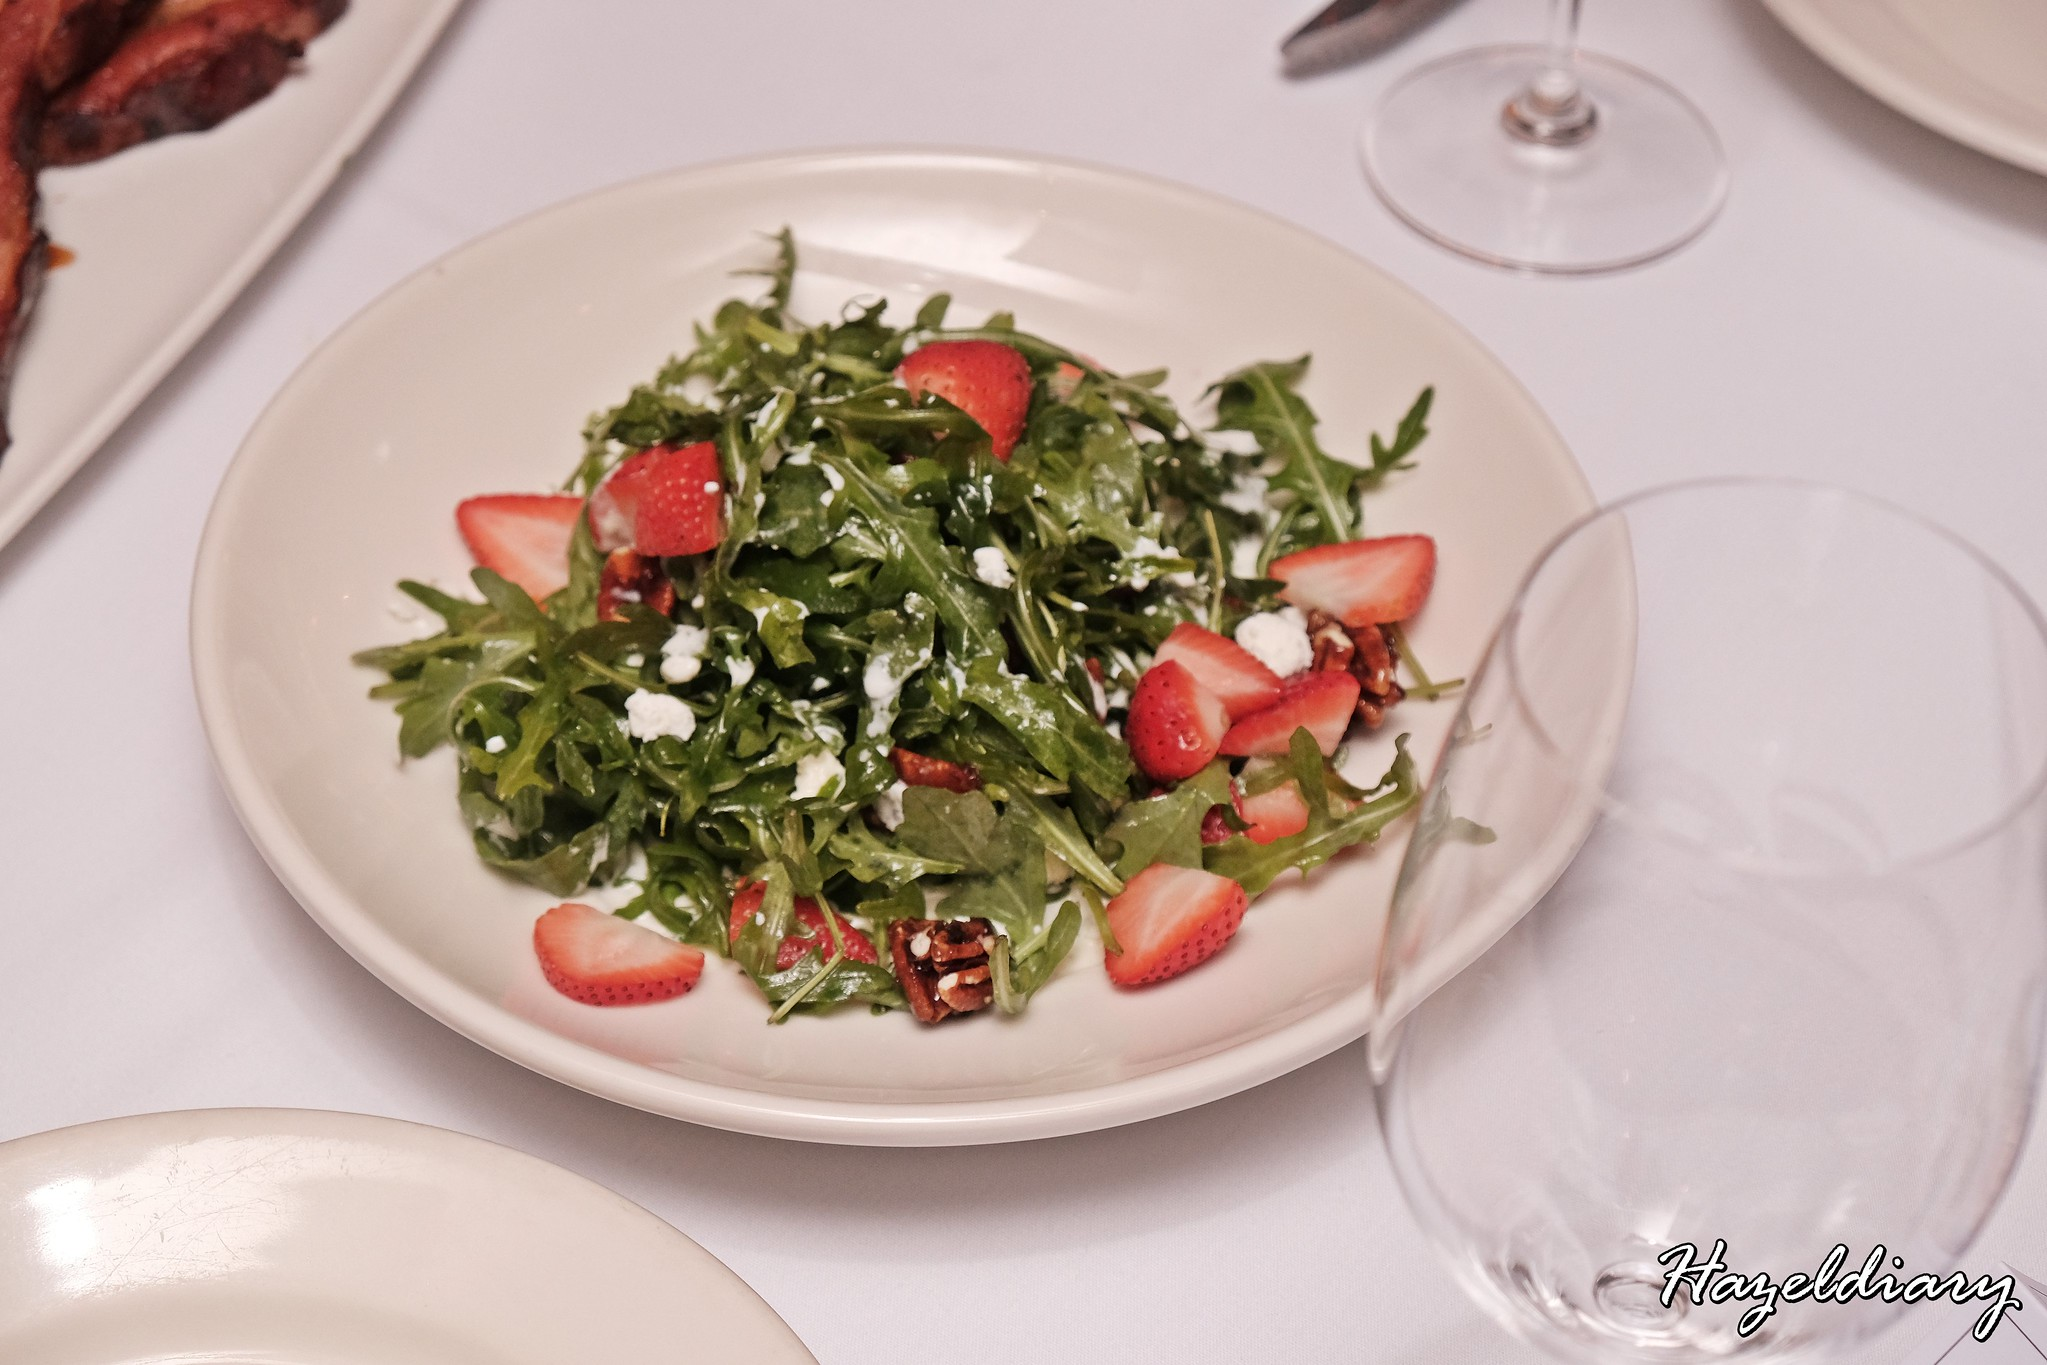 Morton's Steakhouse Mandarin Oriental-Strawberry, Arugula and Goat Cheese Salad